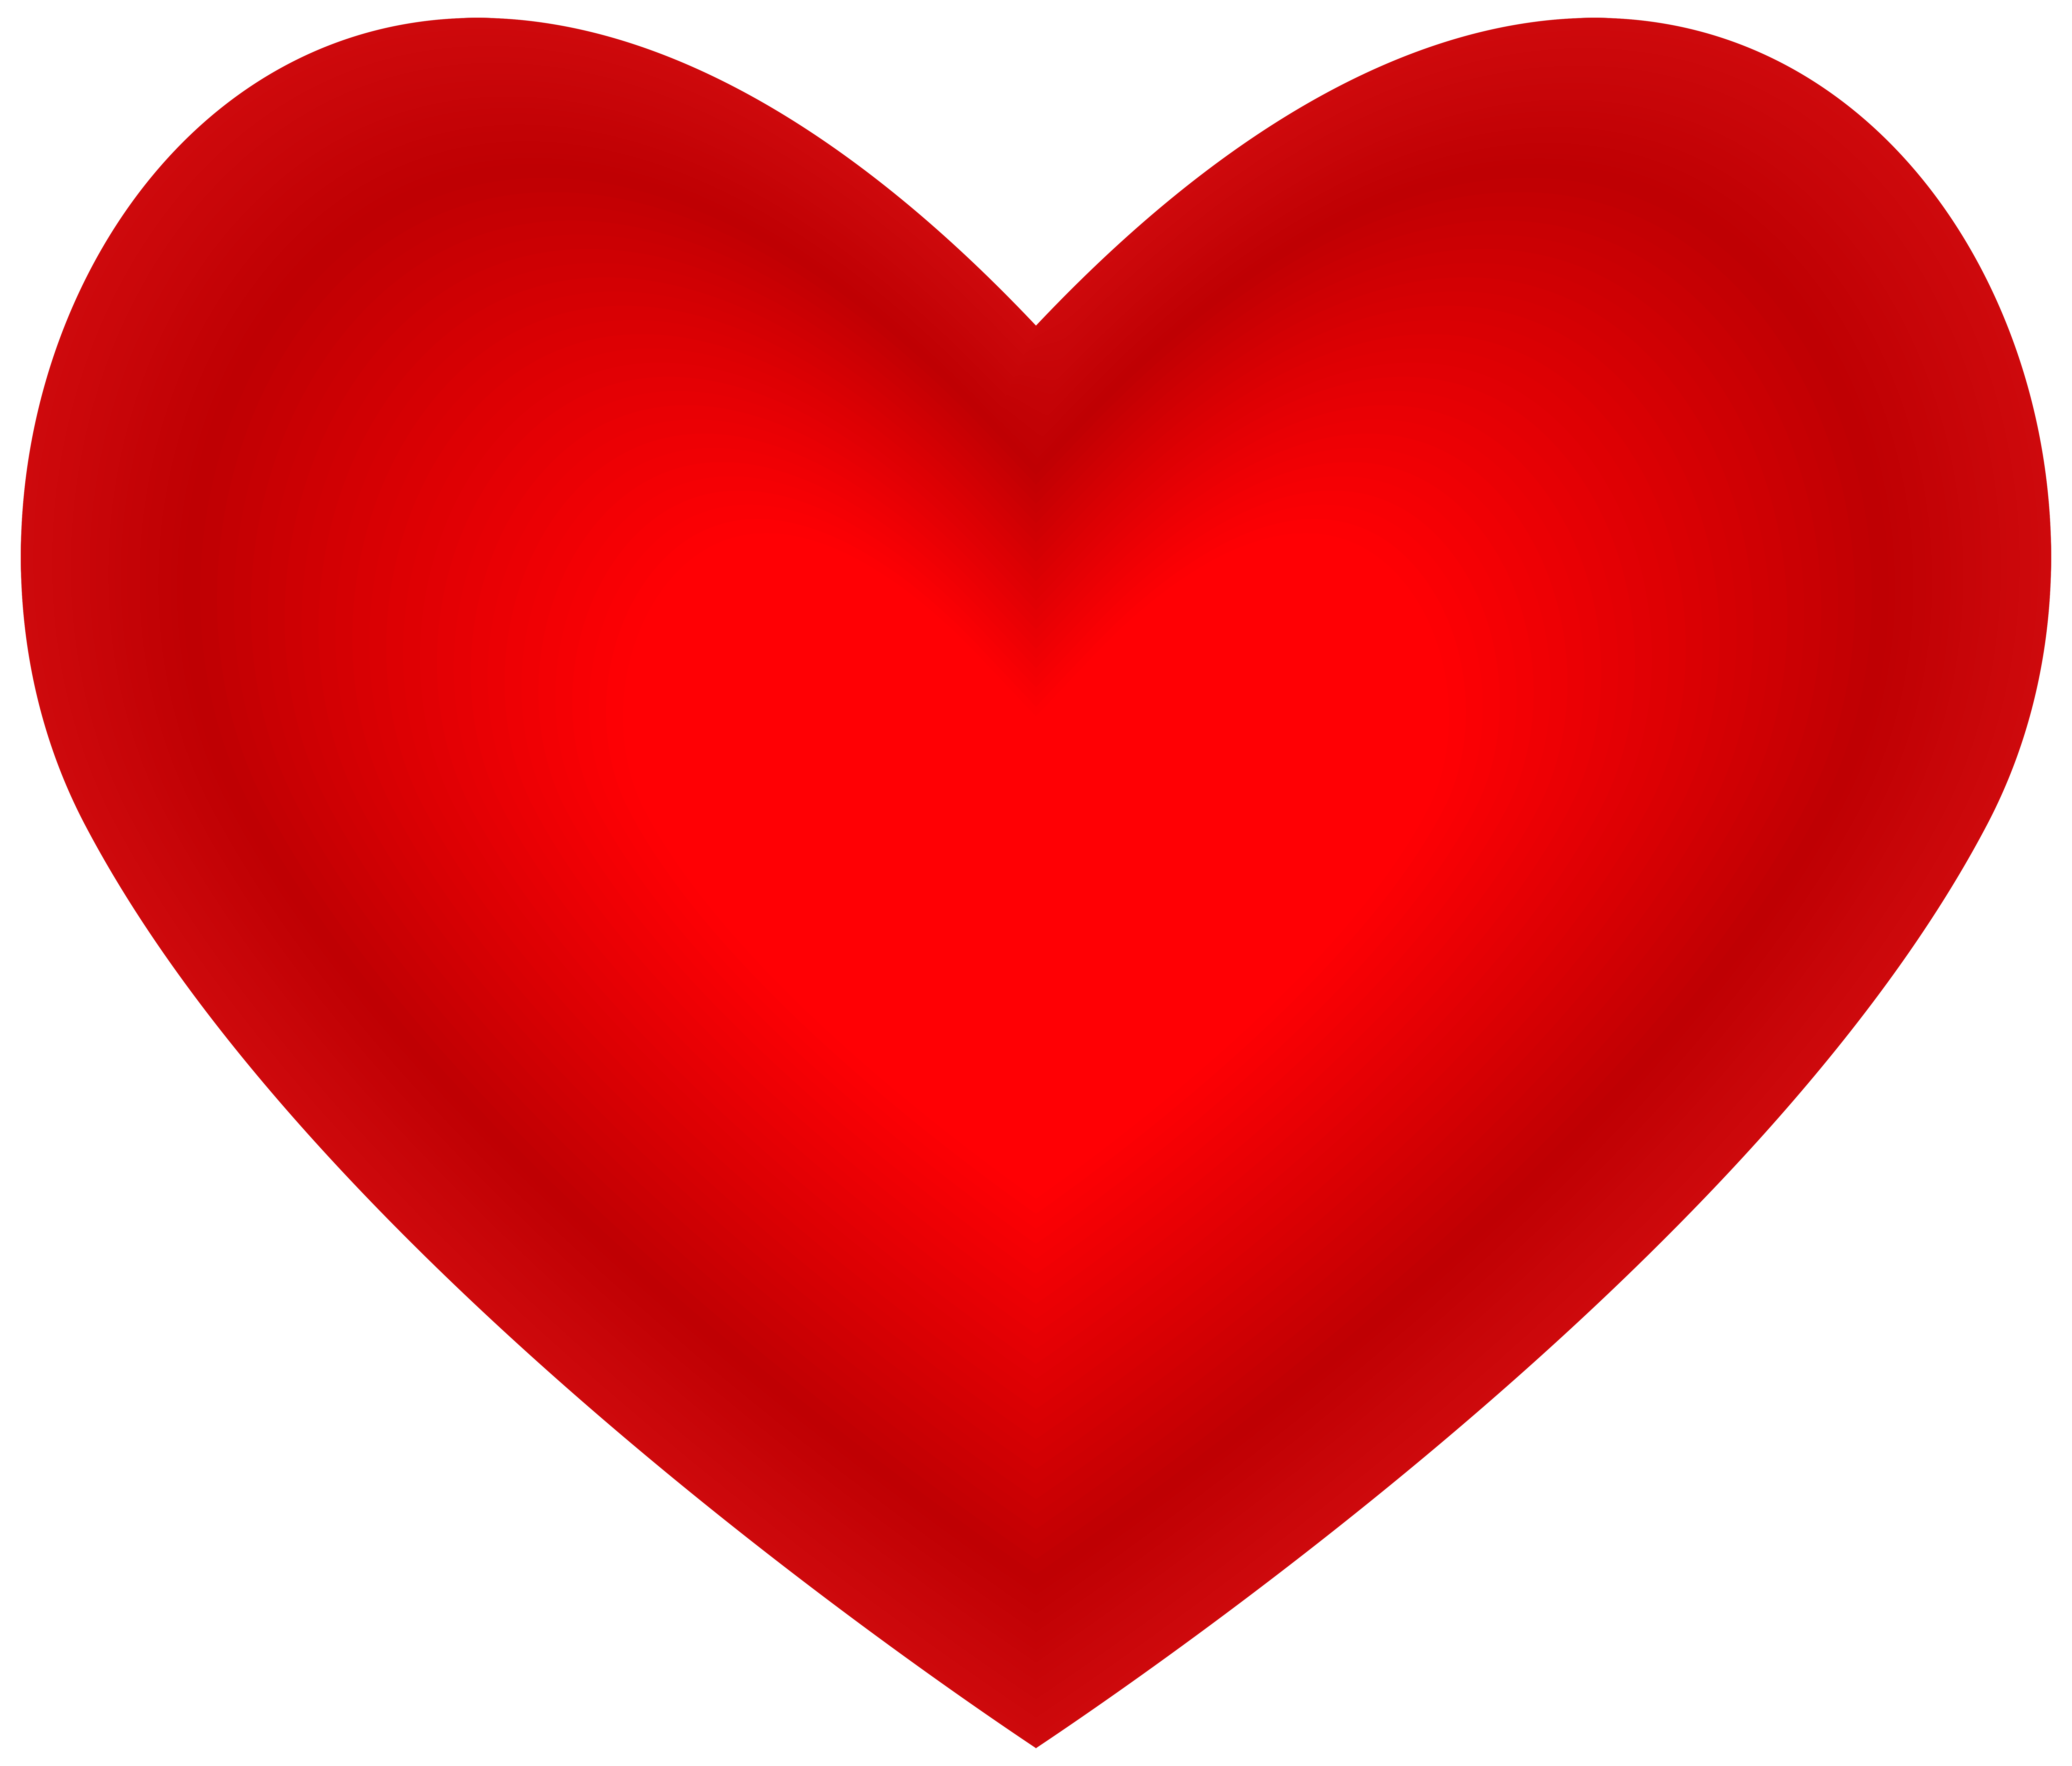 Red Heart Transparent Png Image View Full Size Valentines Clip Heart Images Free Clip Art